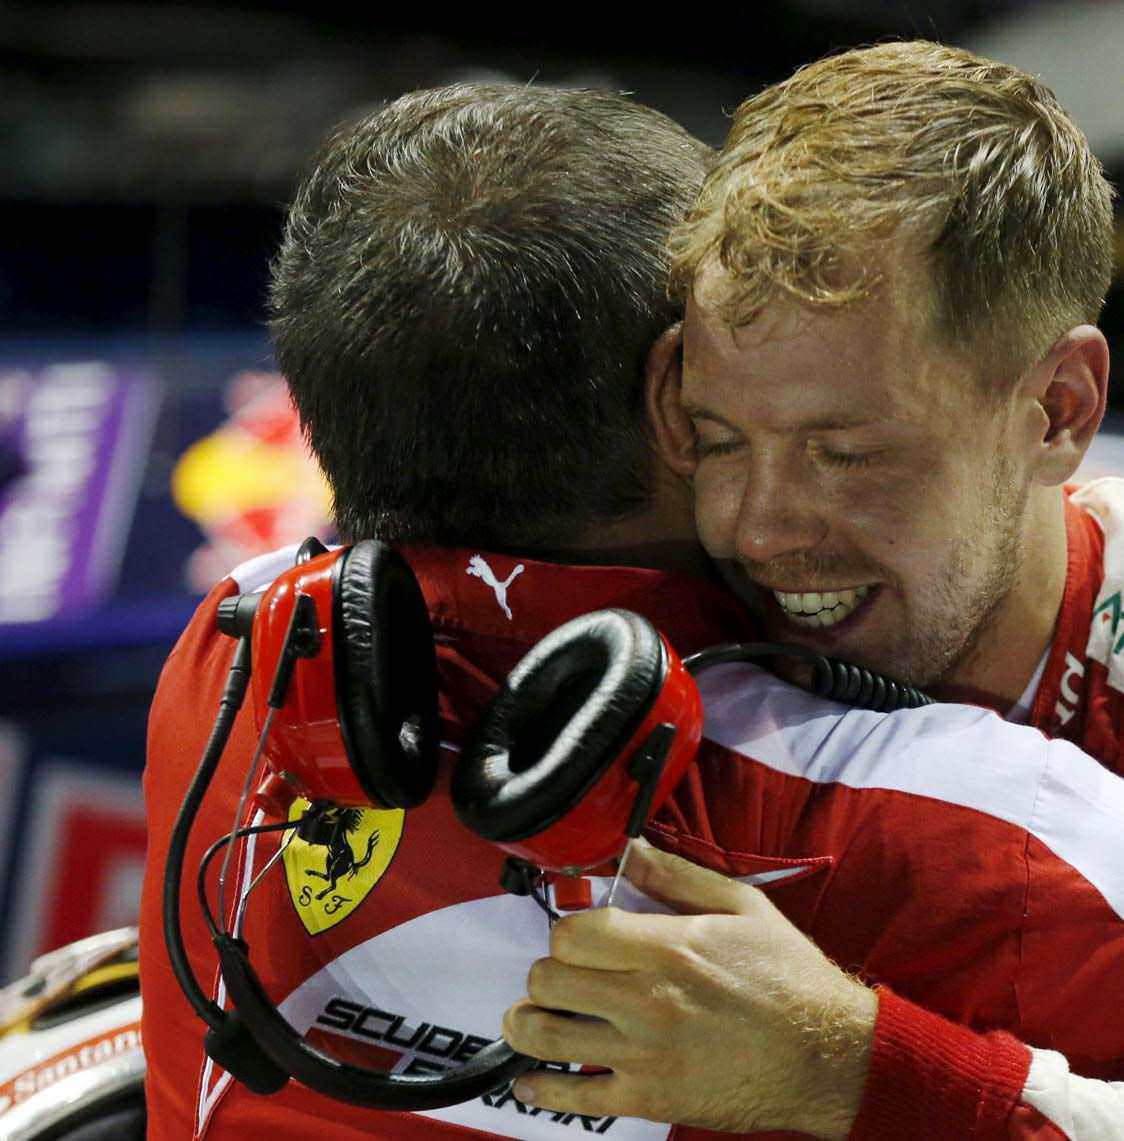 Vettel's Pace Leaves The Rest In A Daze